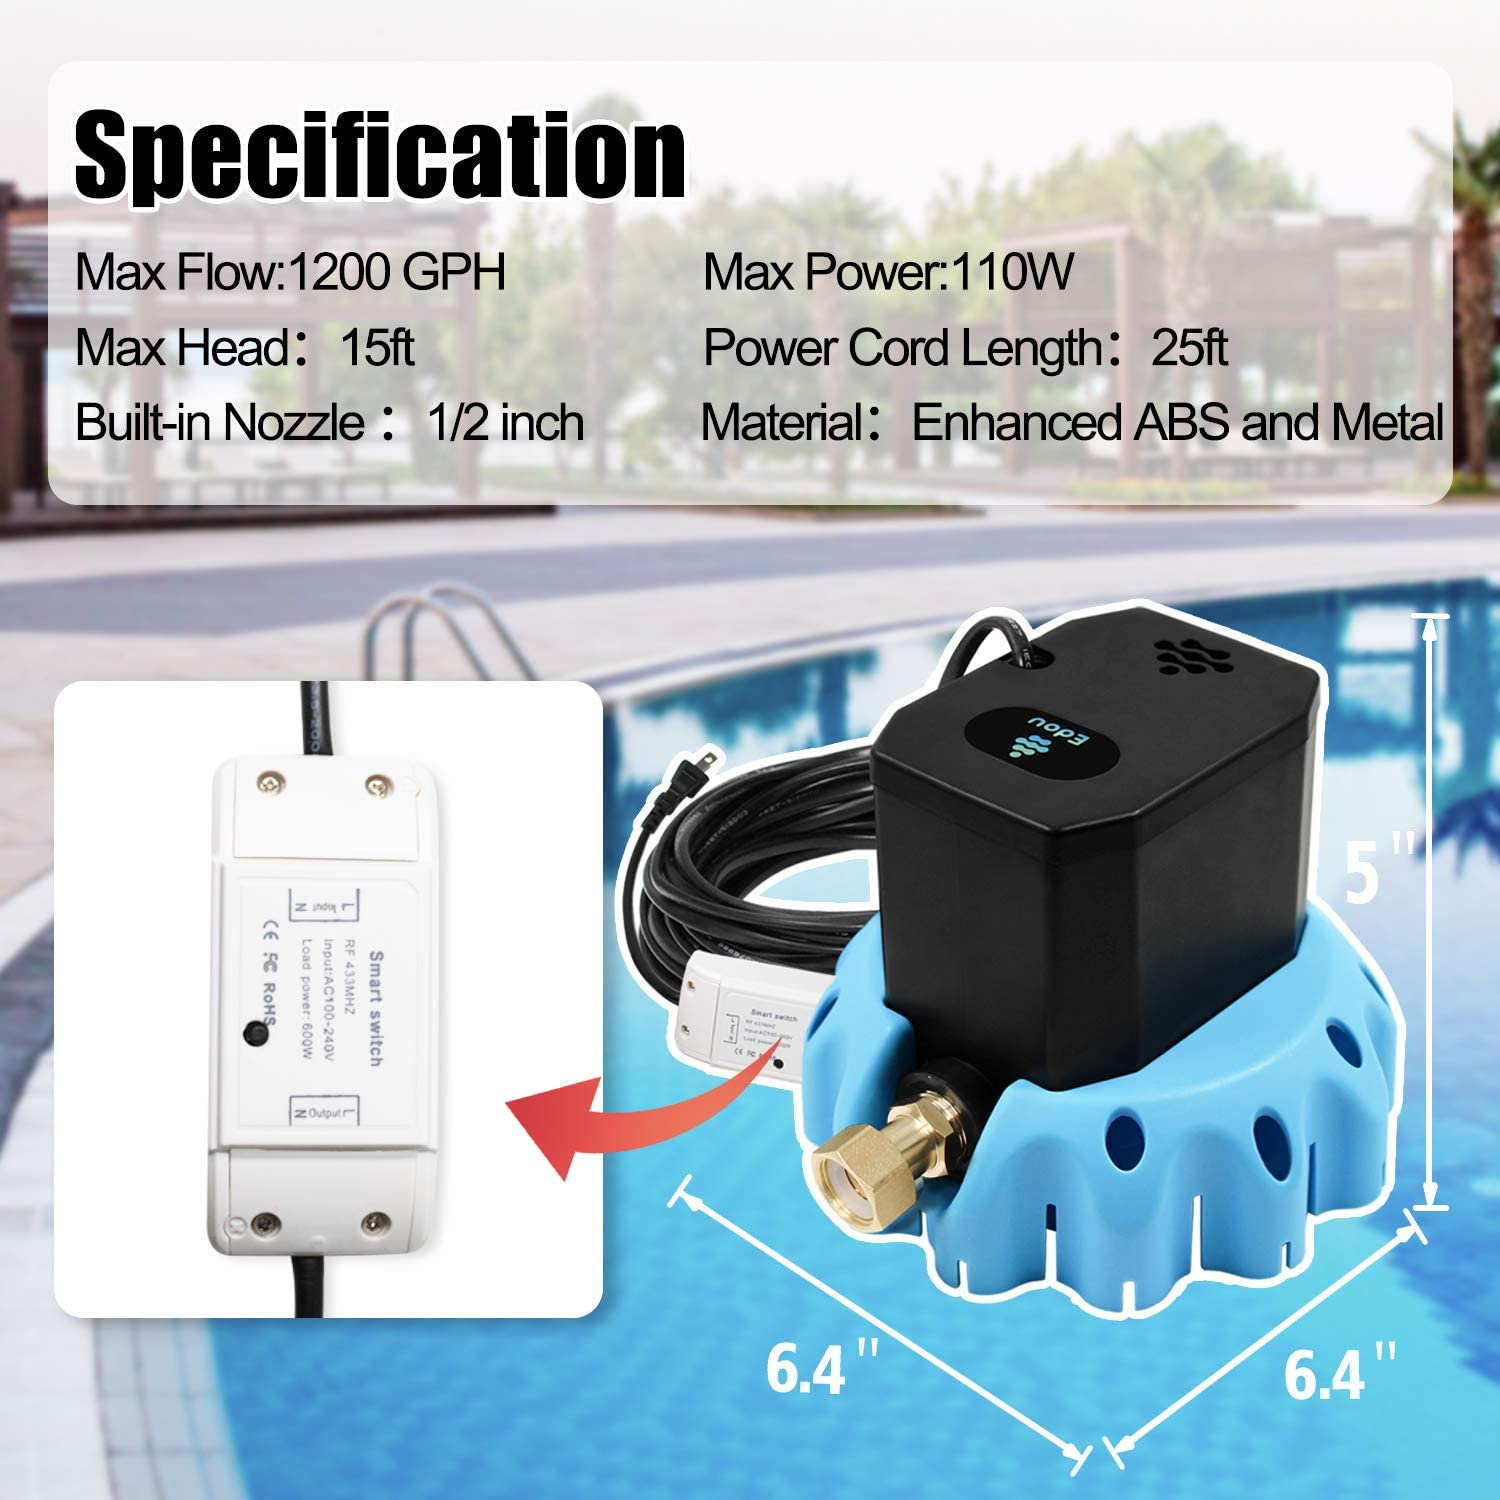 EDOU Remote Control Switch On-Off Pool Cover Pump,Including Remote Control,16 Drainage Hose and 3 Adapters 1200 GPH,Blue and Black